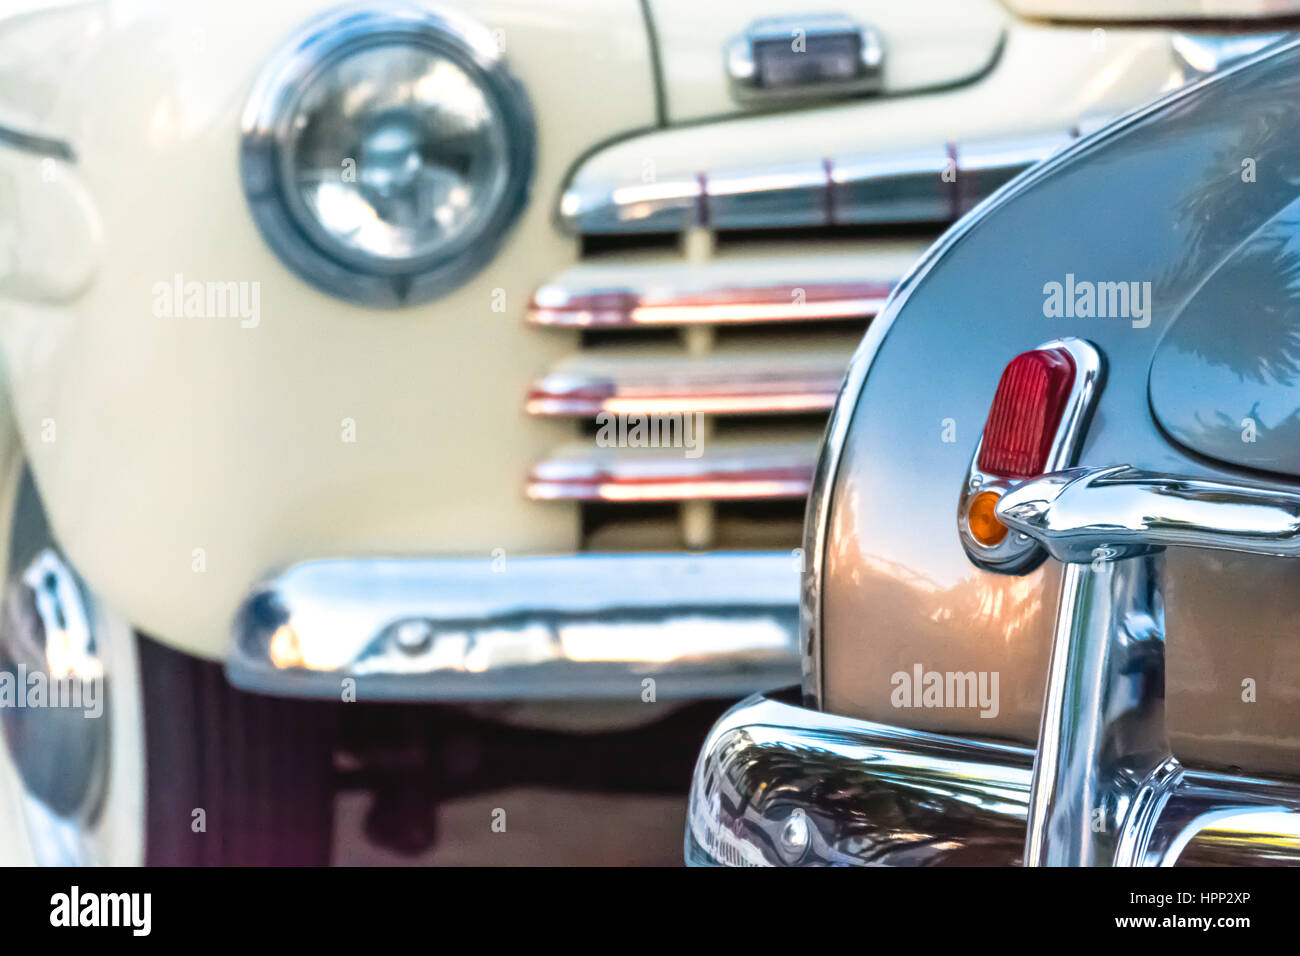 Close Up View of Old Cars Front and Back Stock Photo: 134480270 - Alamy